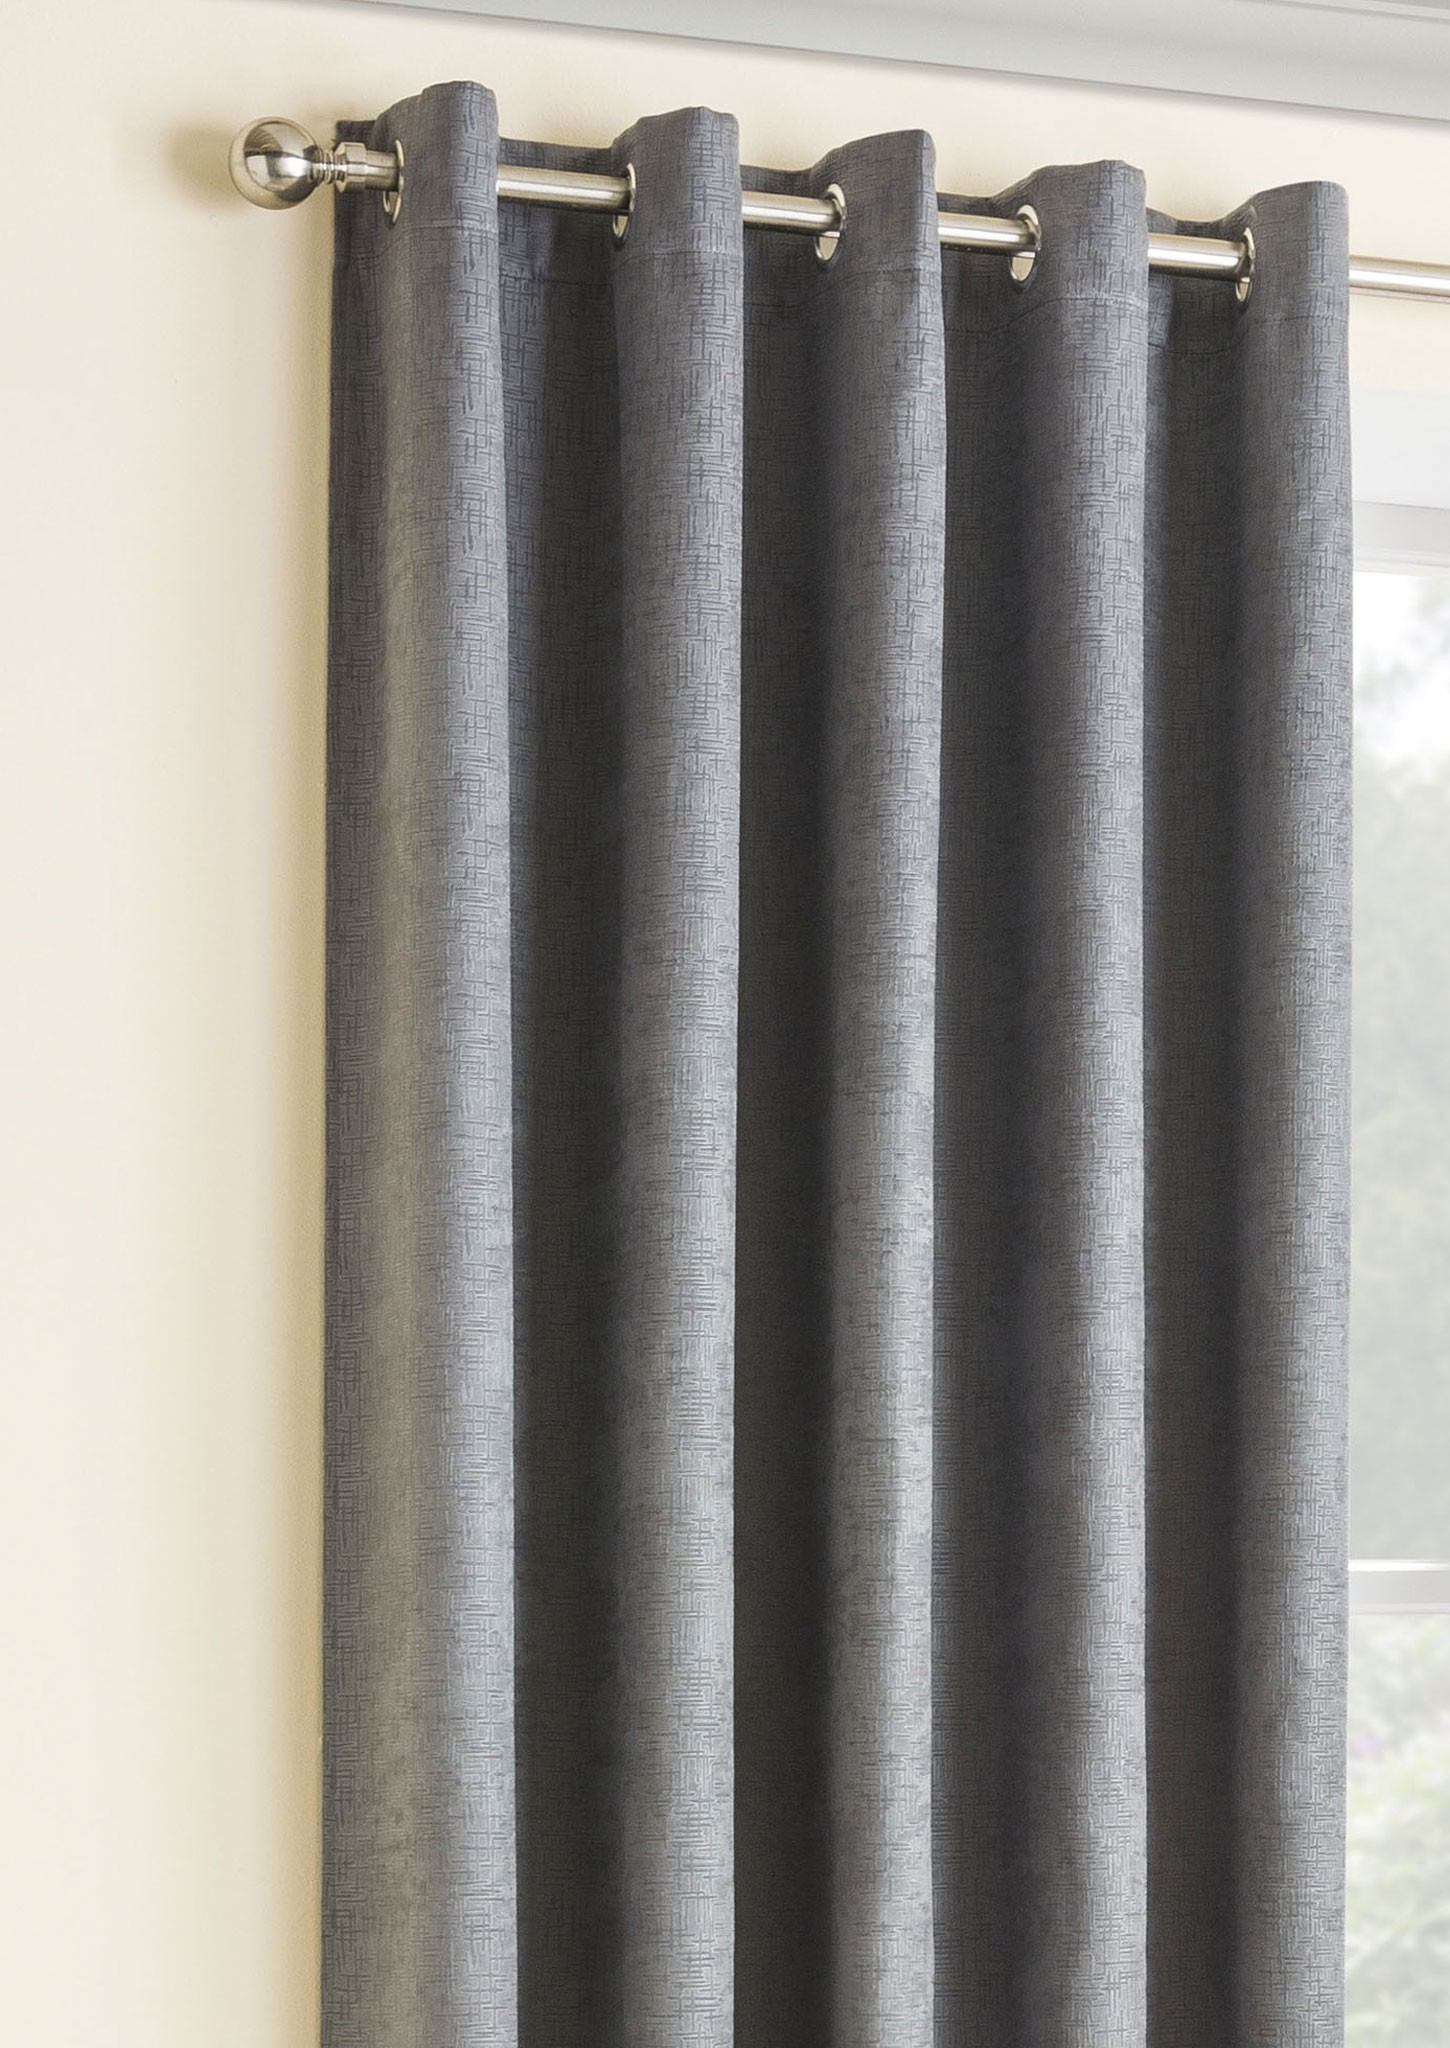 Vogue Grey Blackout Eyelet Curtains Intended For Grey Eyelet Curtains (Image 24 of 25)